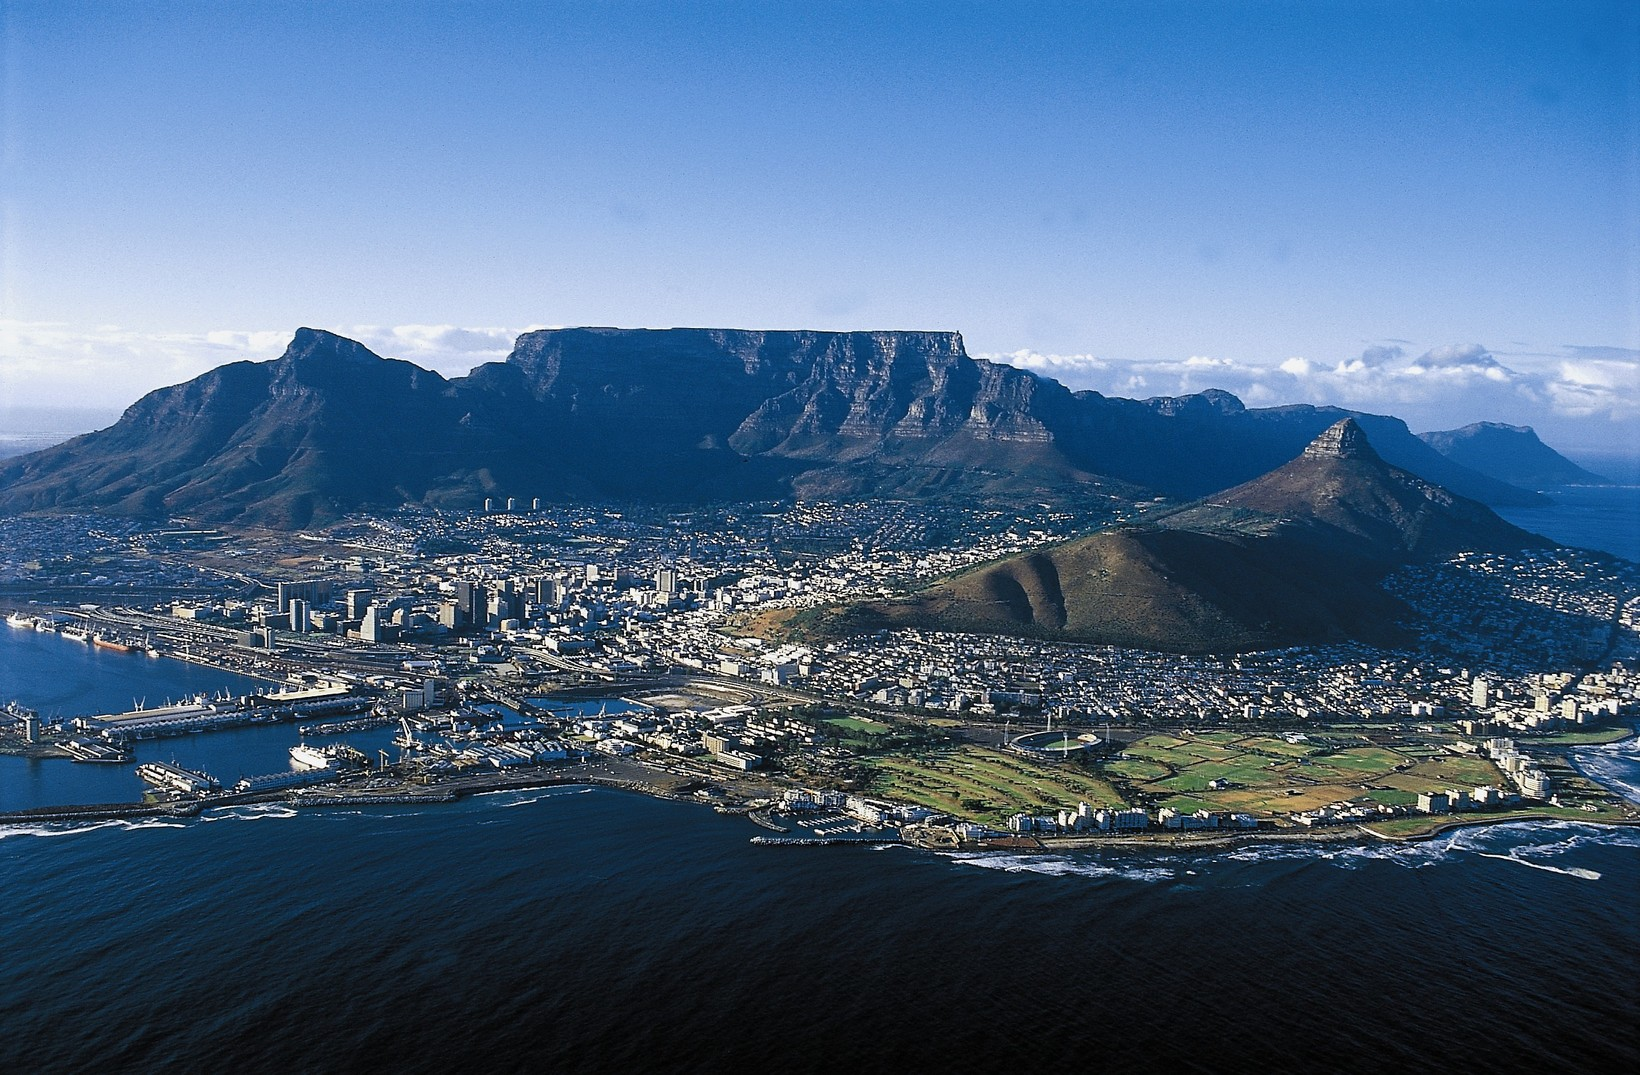 Cape Town - Voted one of the TOP 10 Cities to Visit